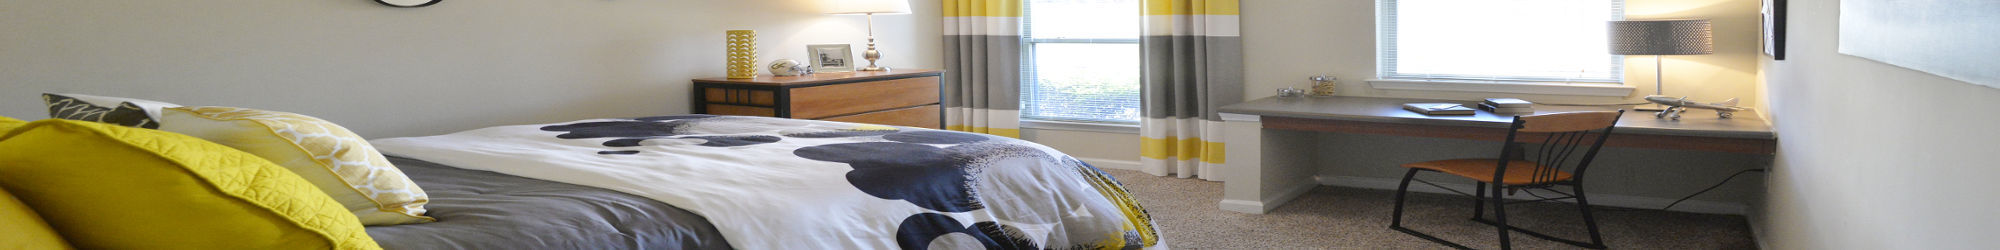 Affordable Bedroom Student Apartments In Atlanta Ga